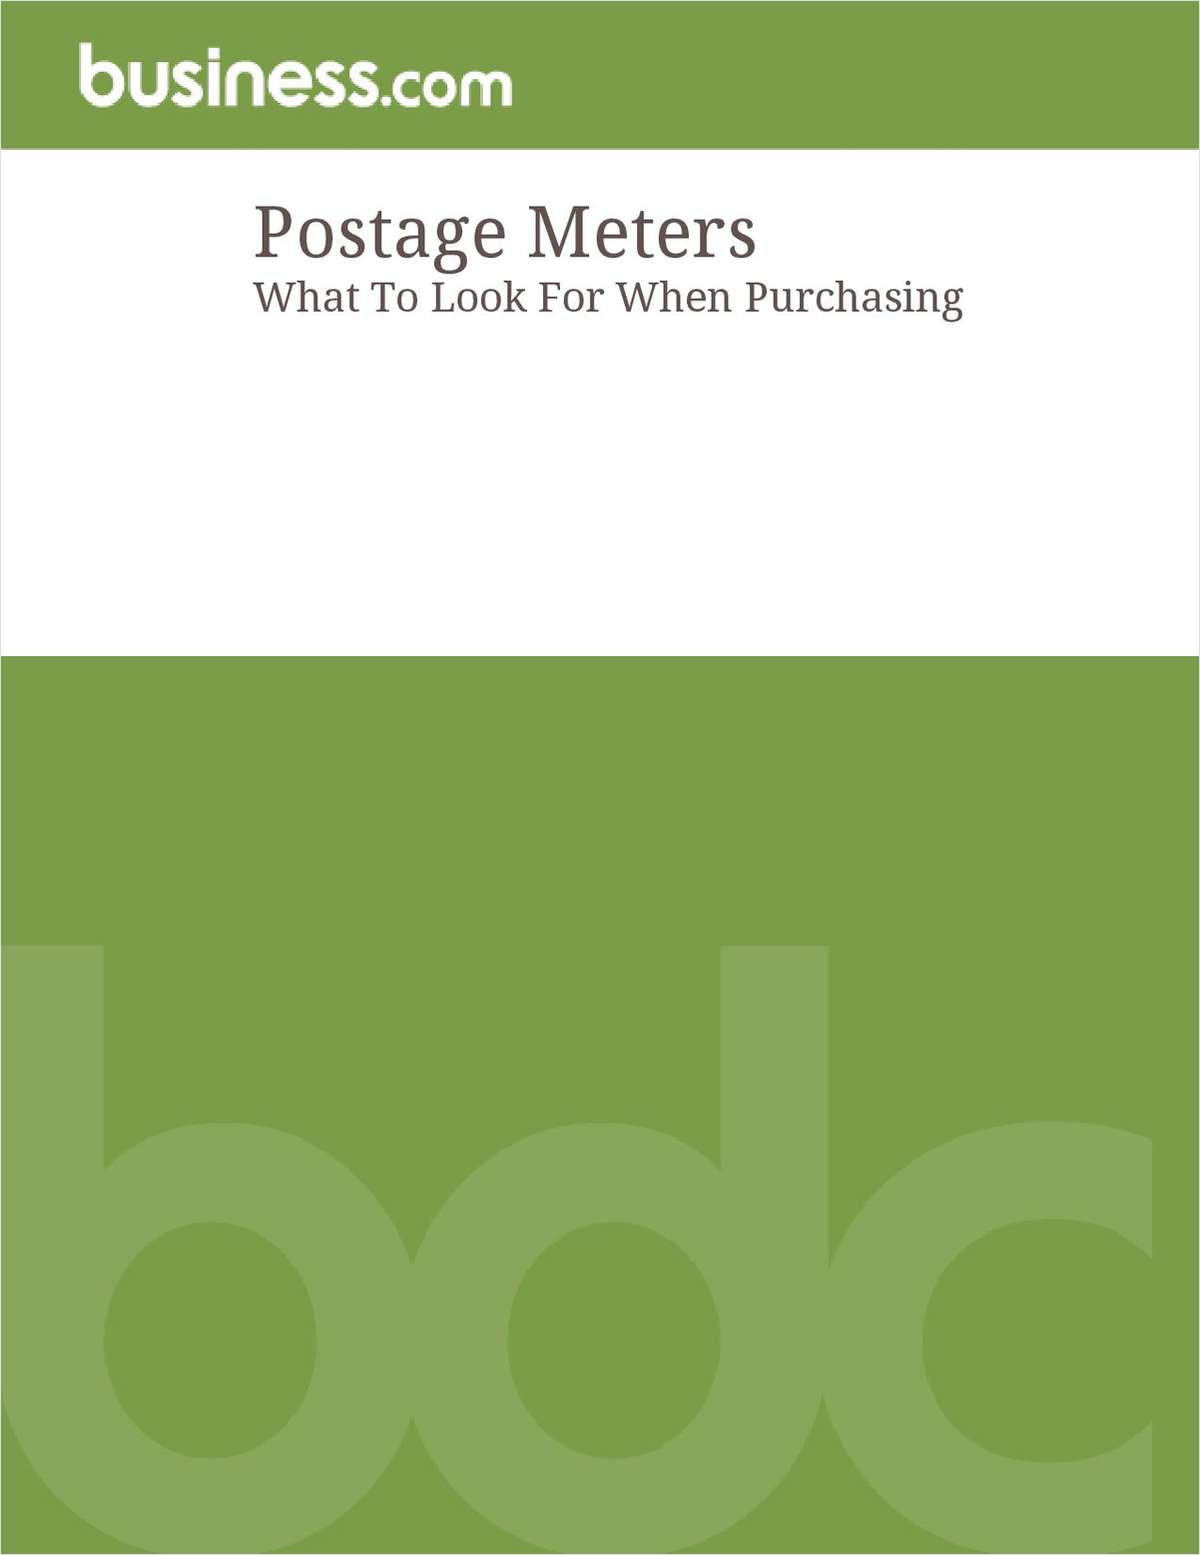 What To Look For When Purchasing A Postage Meter